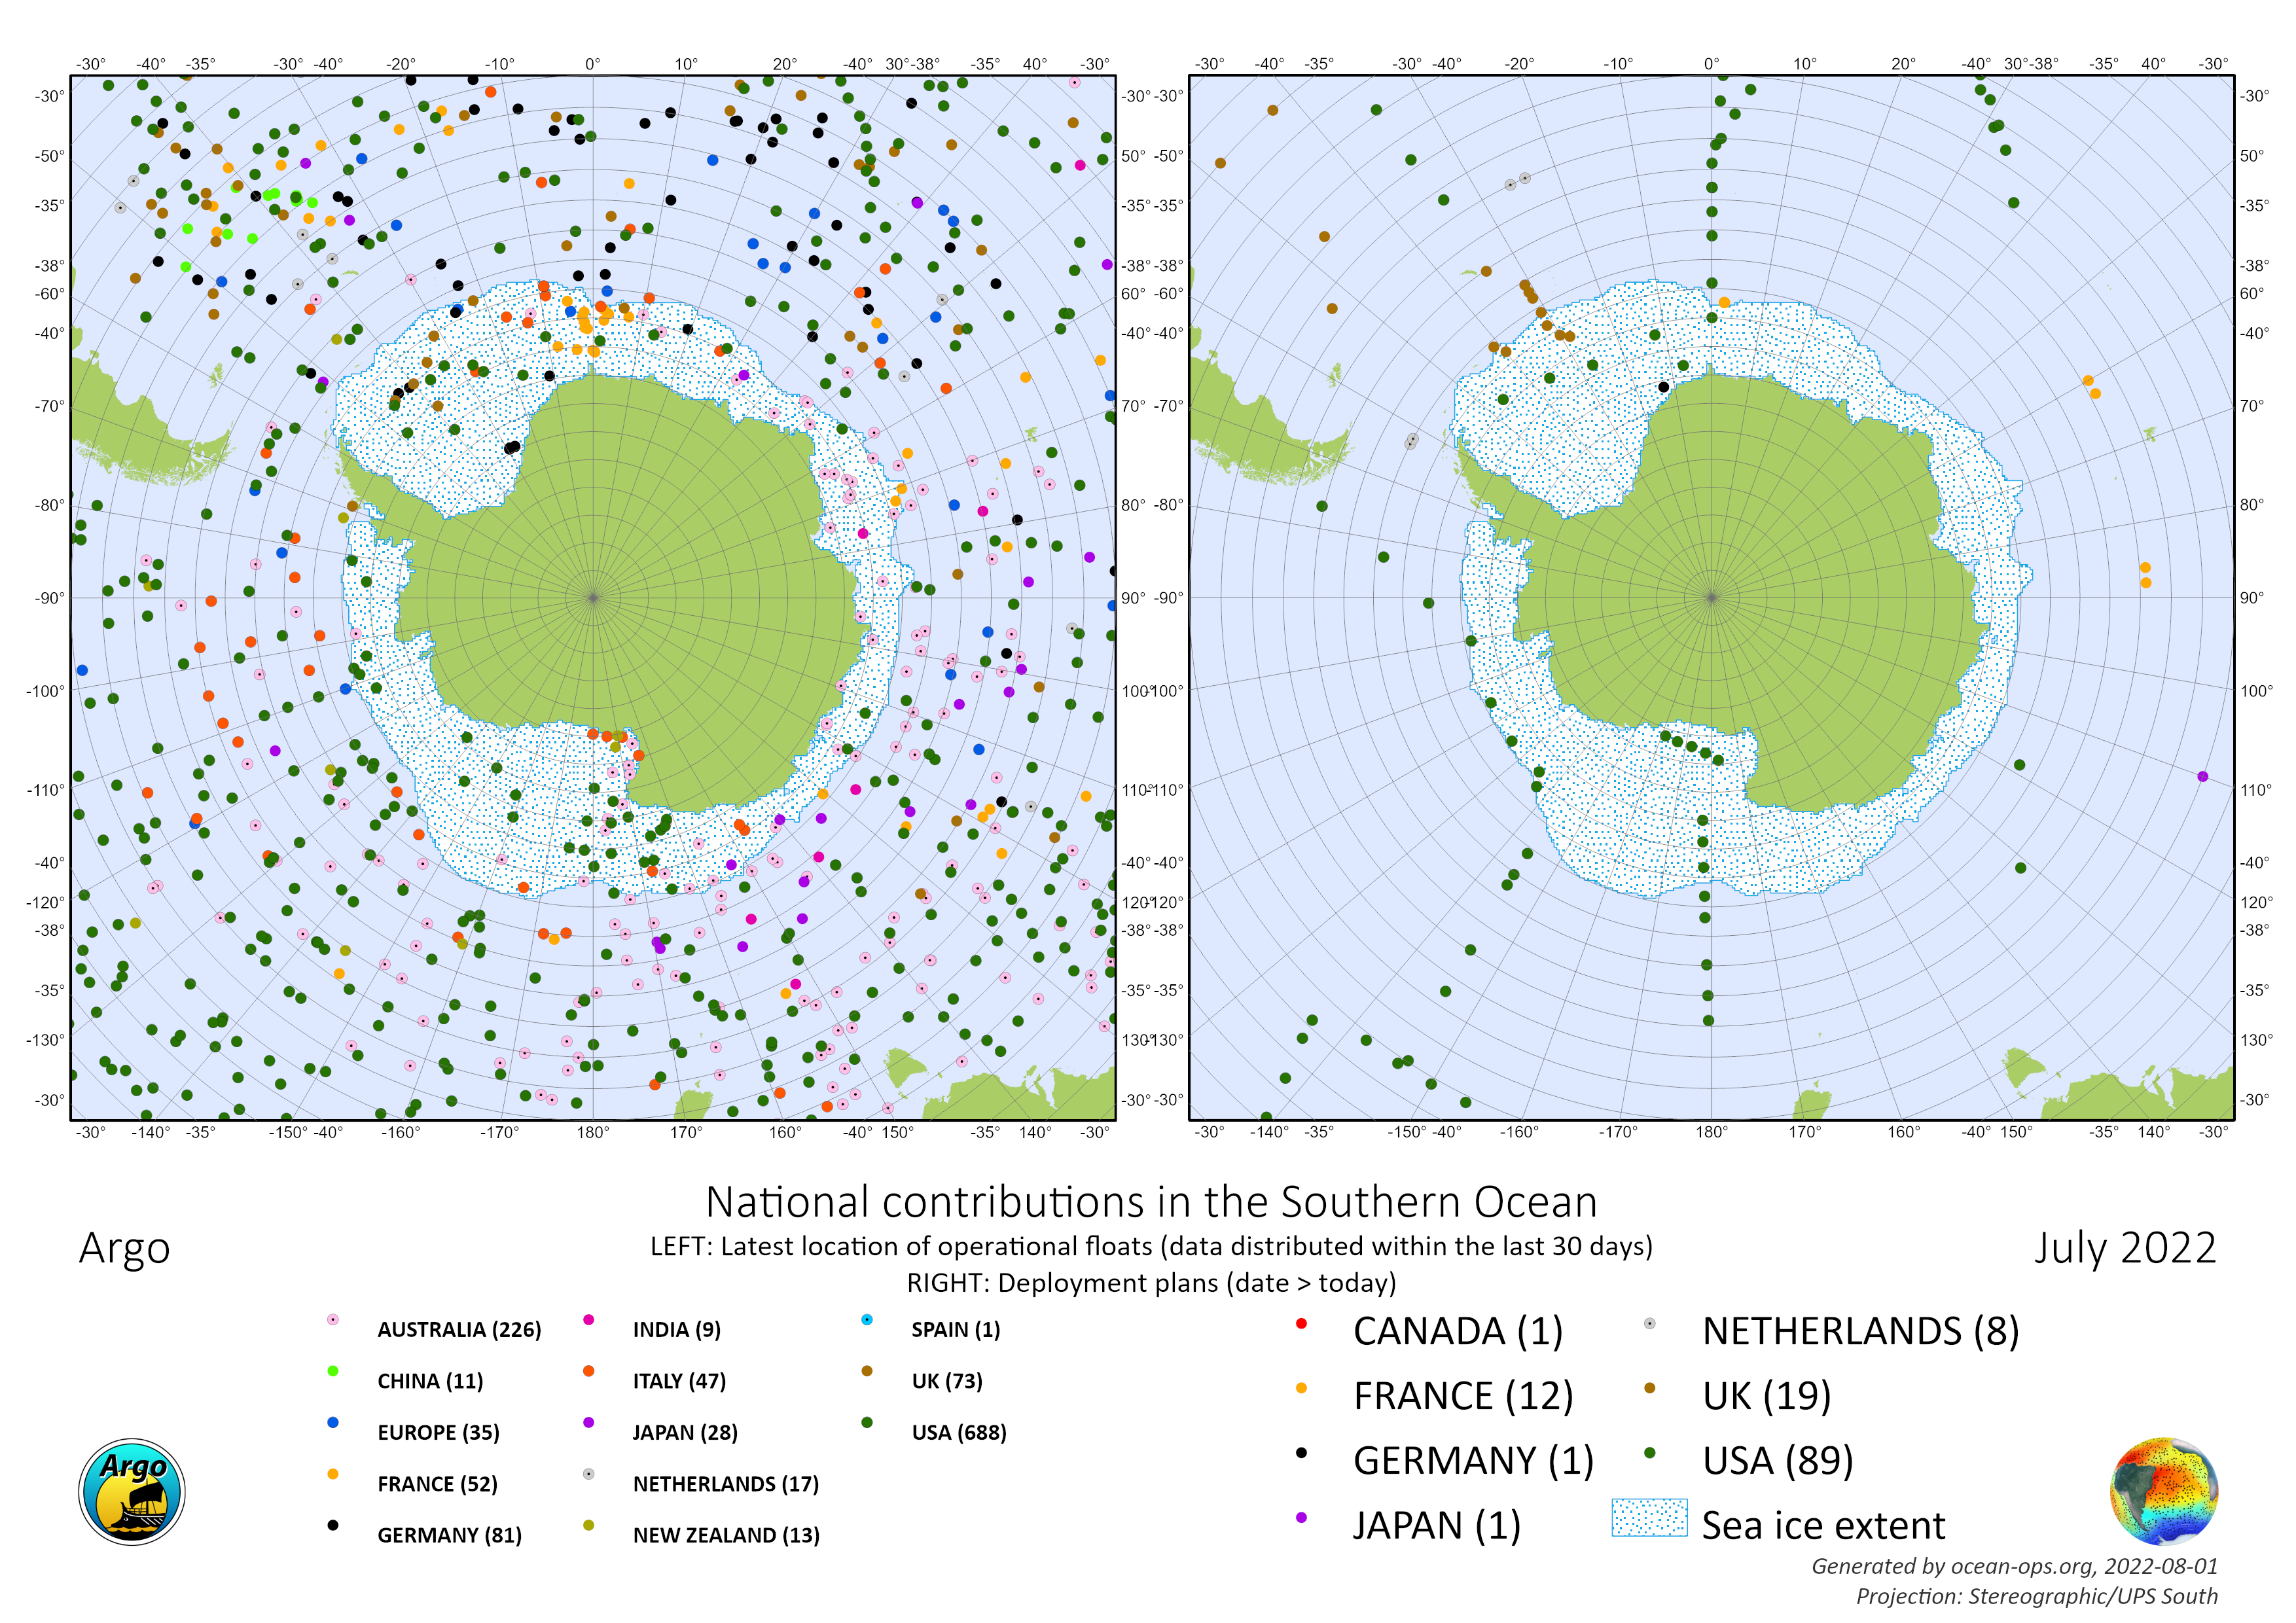 Current Argo float status and planned float deployments in the Southern Ocean